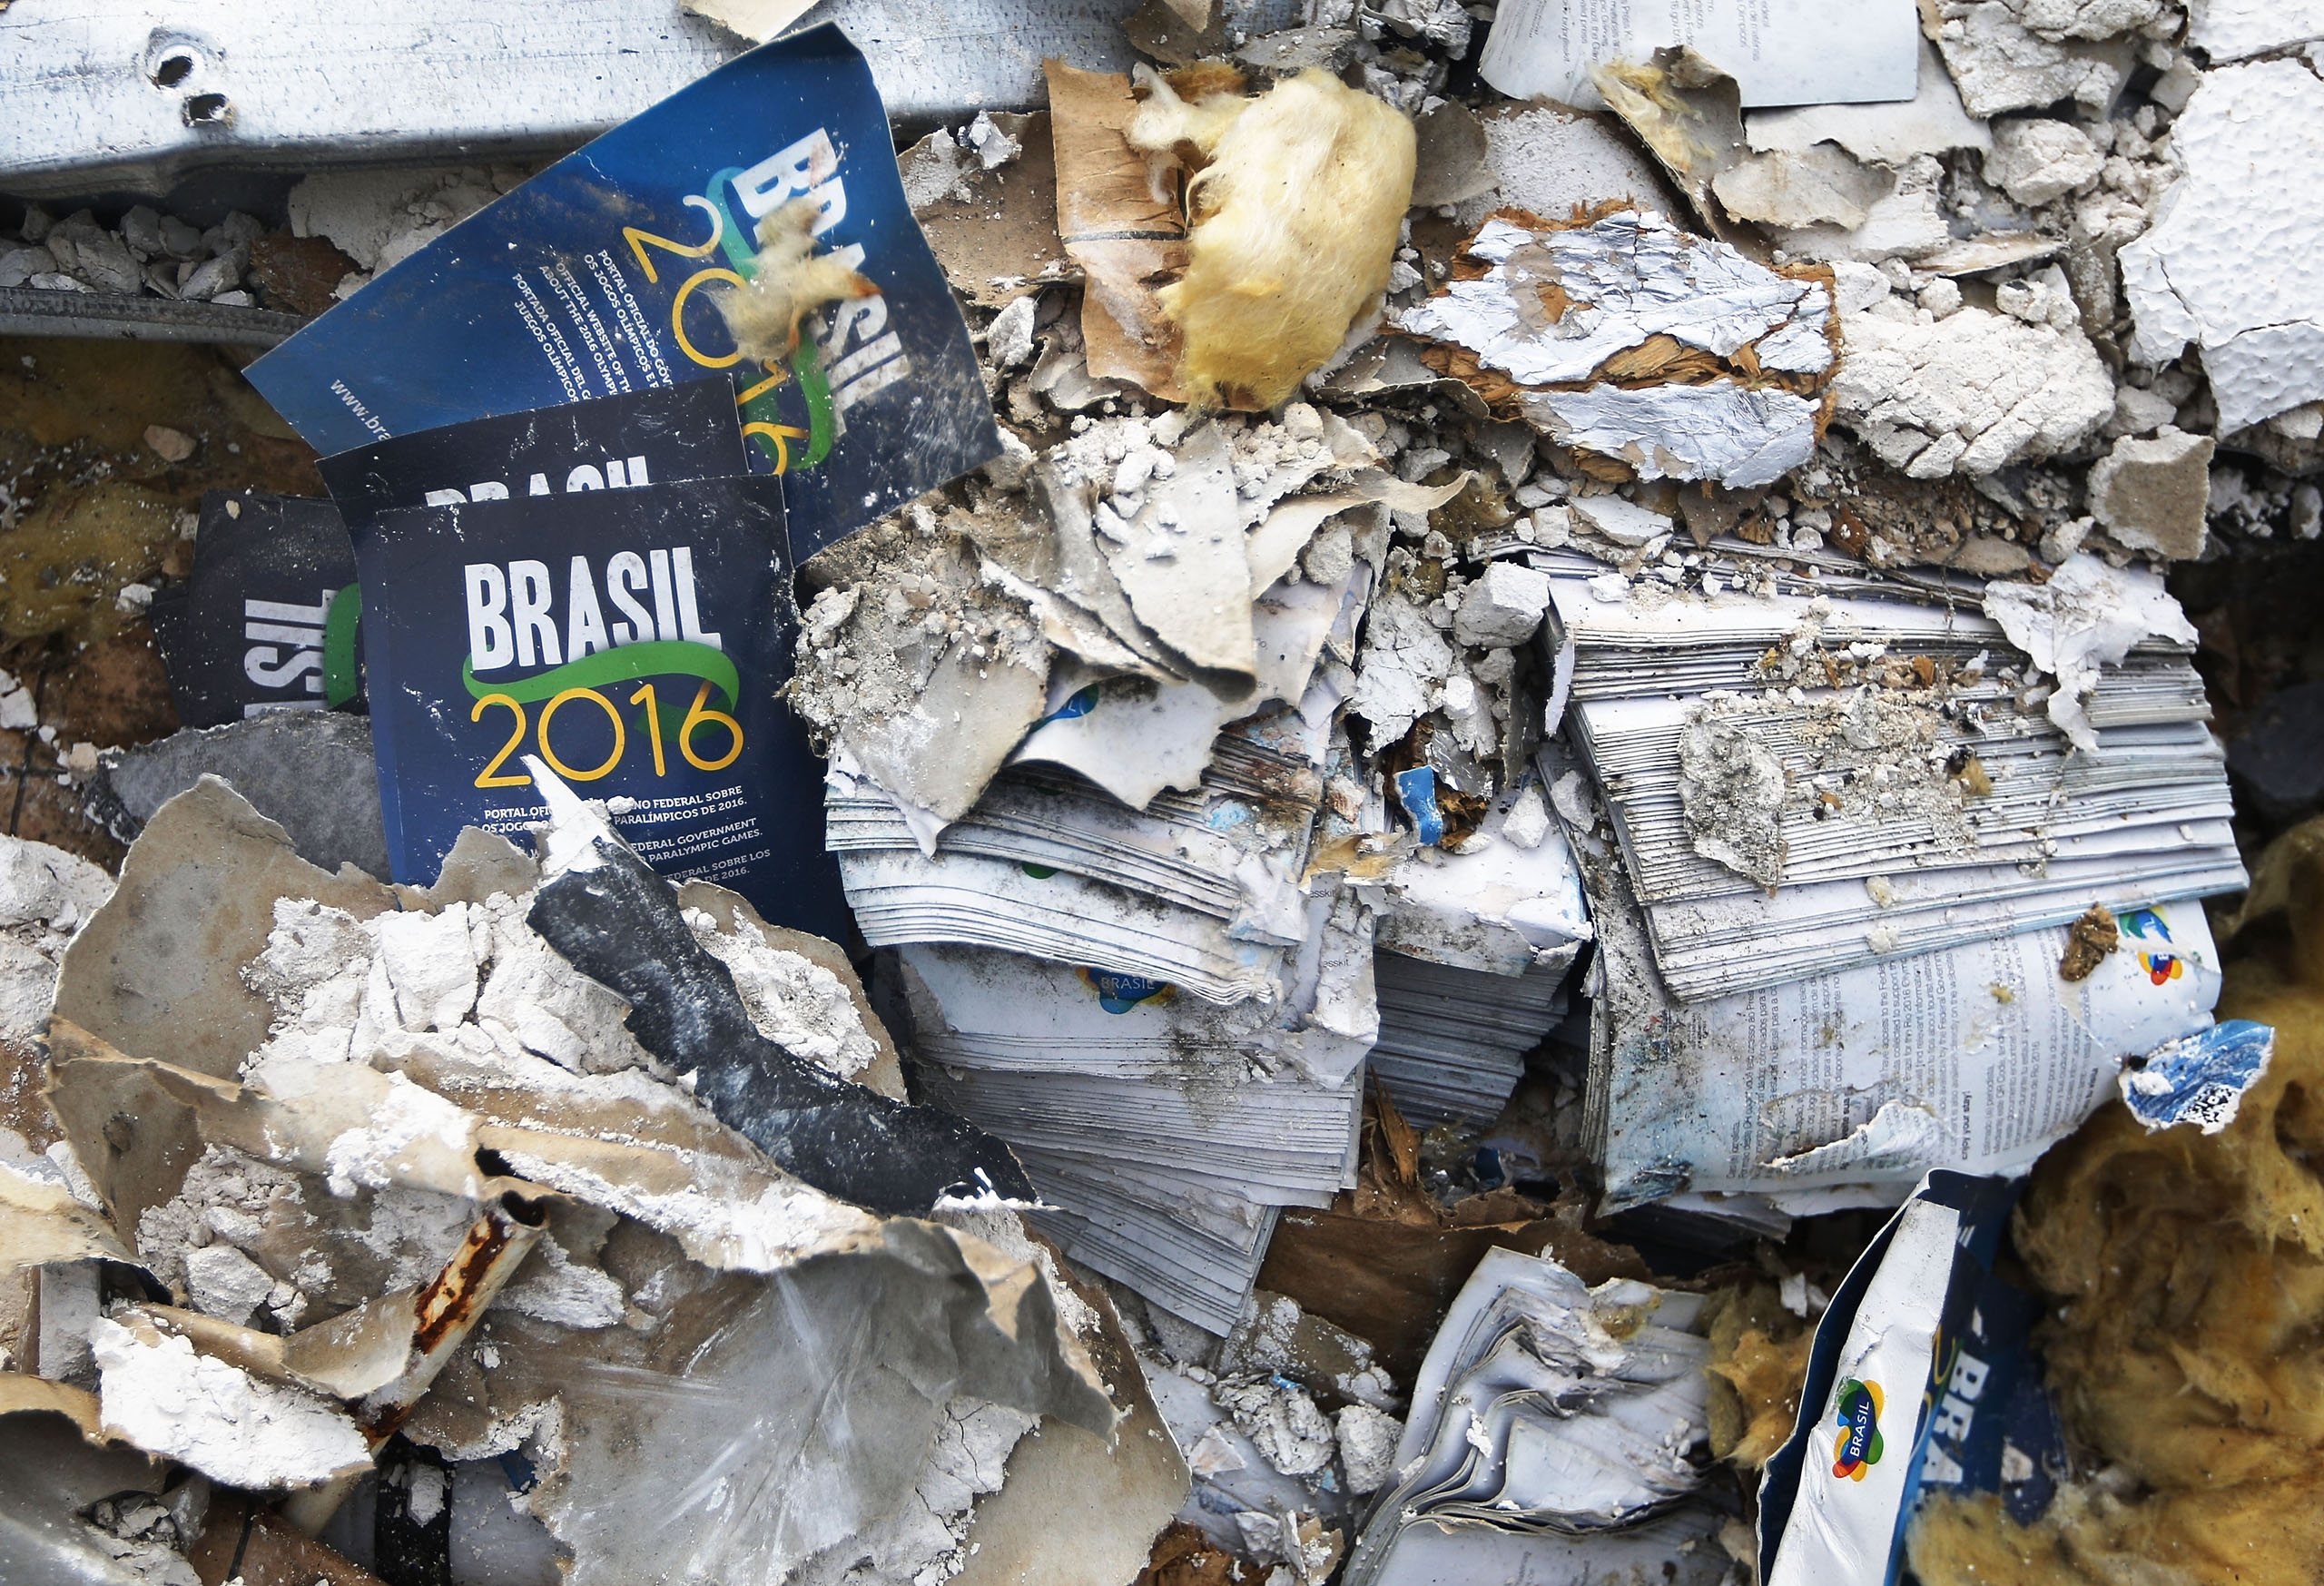 Media pamphlets sit among the demolished remains of the former Rio Media Center, constructed to host some visiting media for the Rio 2016 Olympic Games, on Nov. 21, 2016.